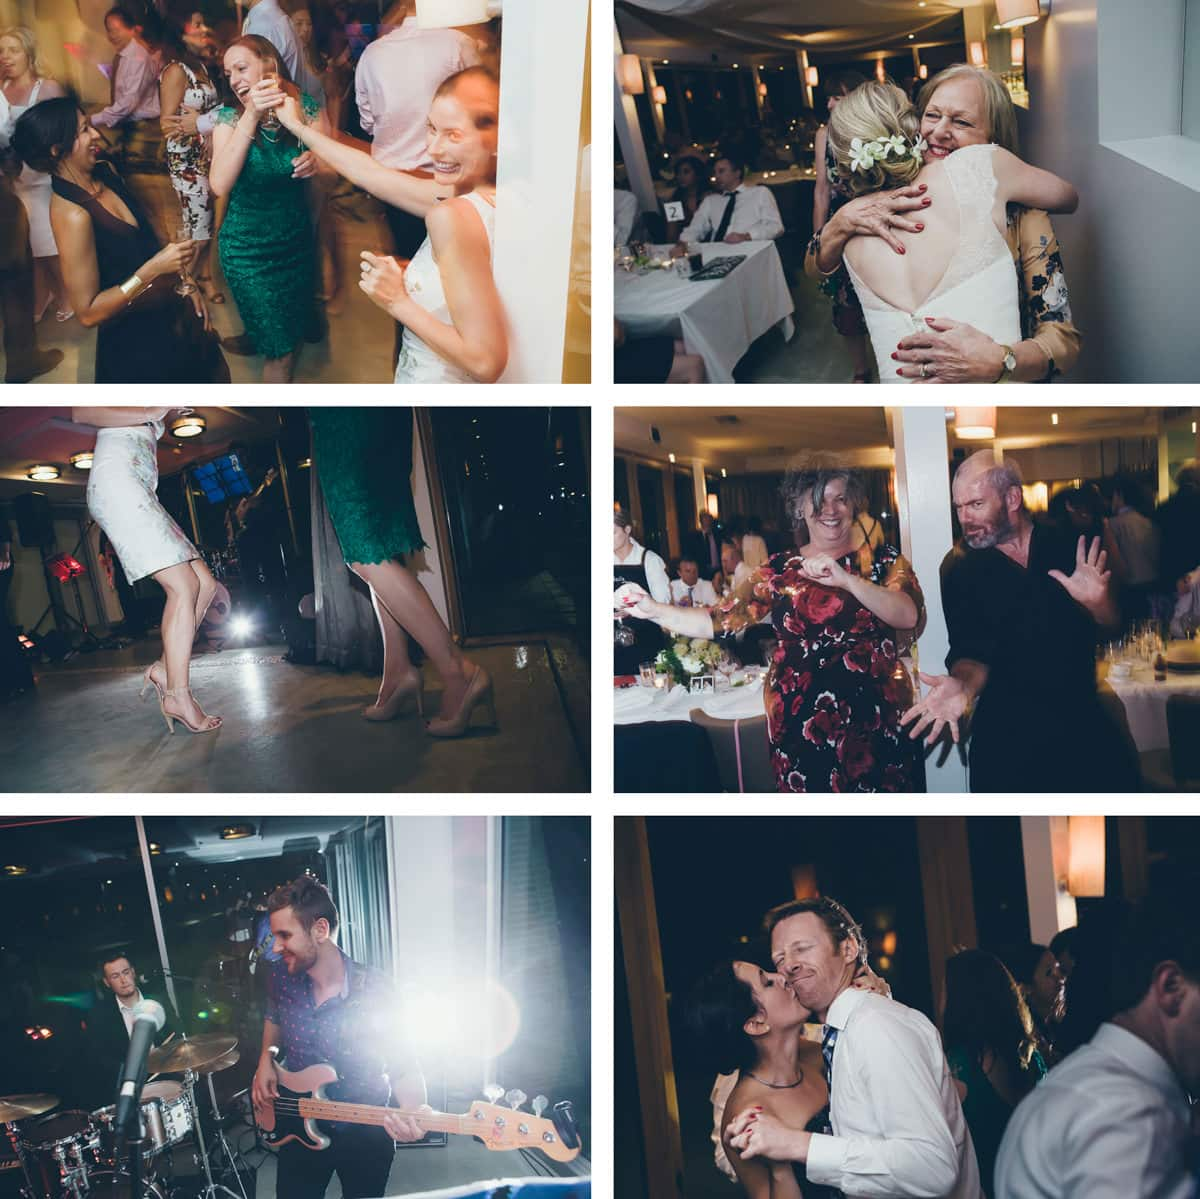 dance at sails on the bay, elwood - wedding photos - action and fun